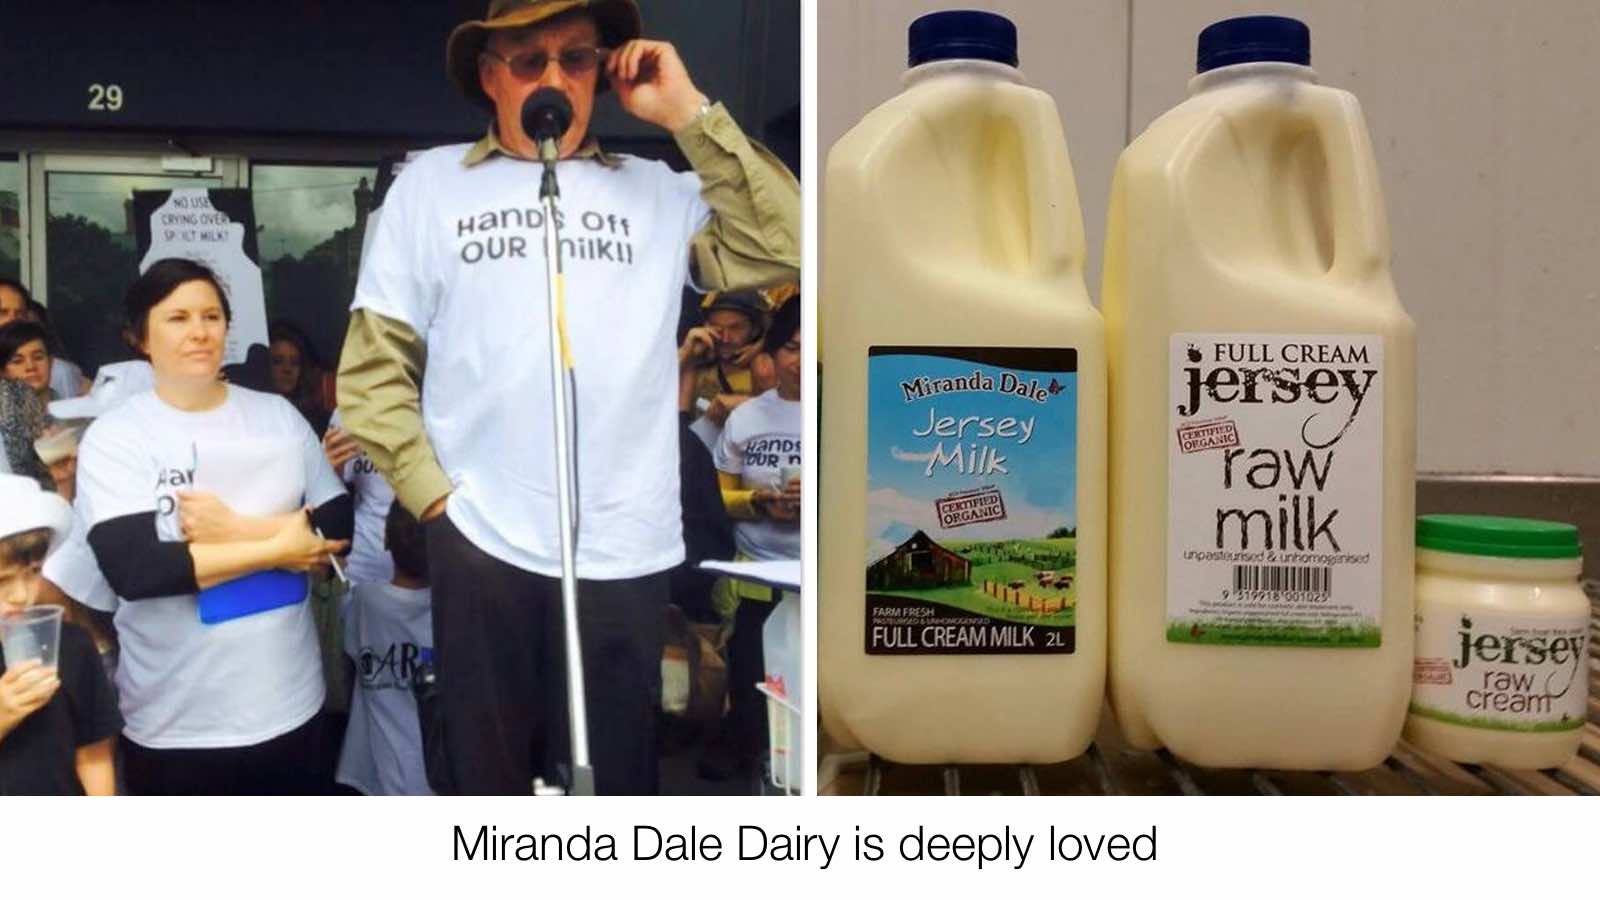 Crowdfunding for continued raw milk